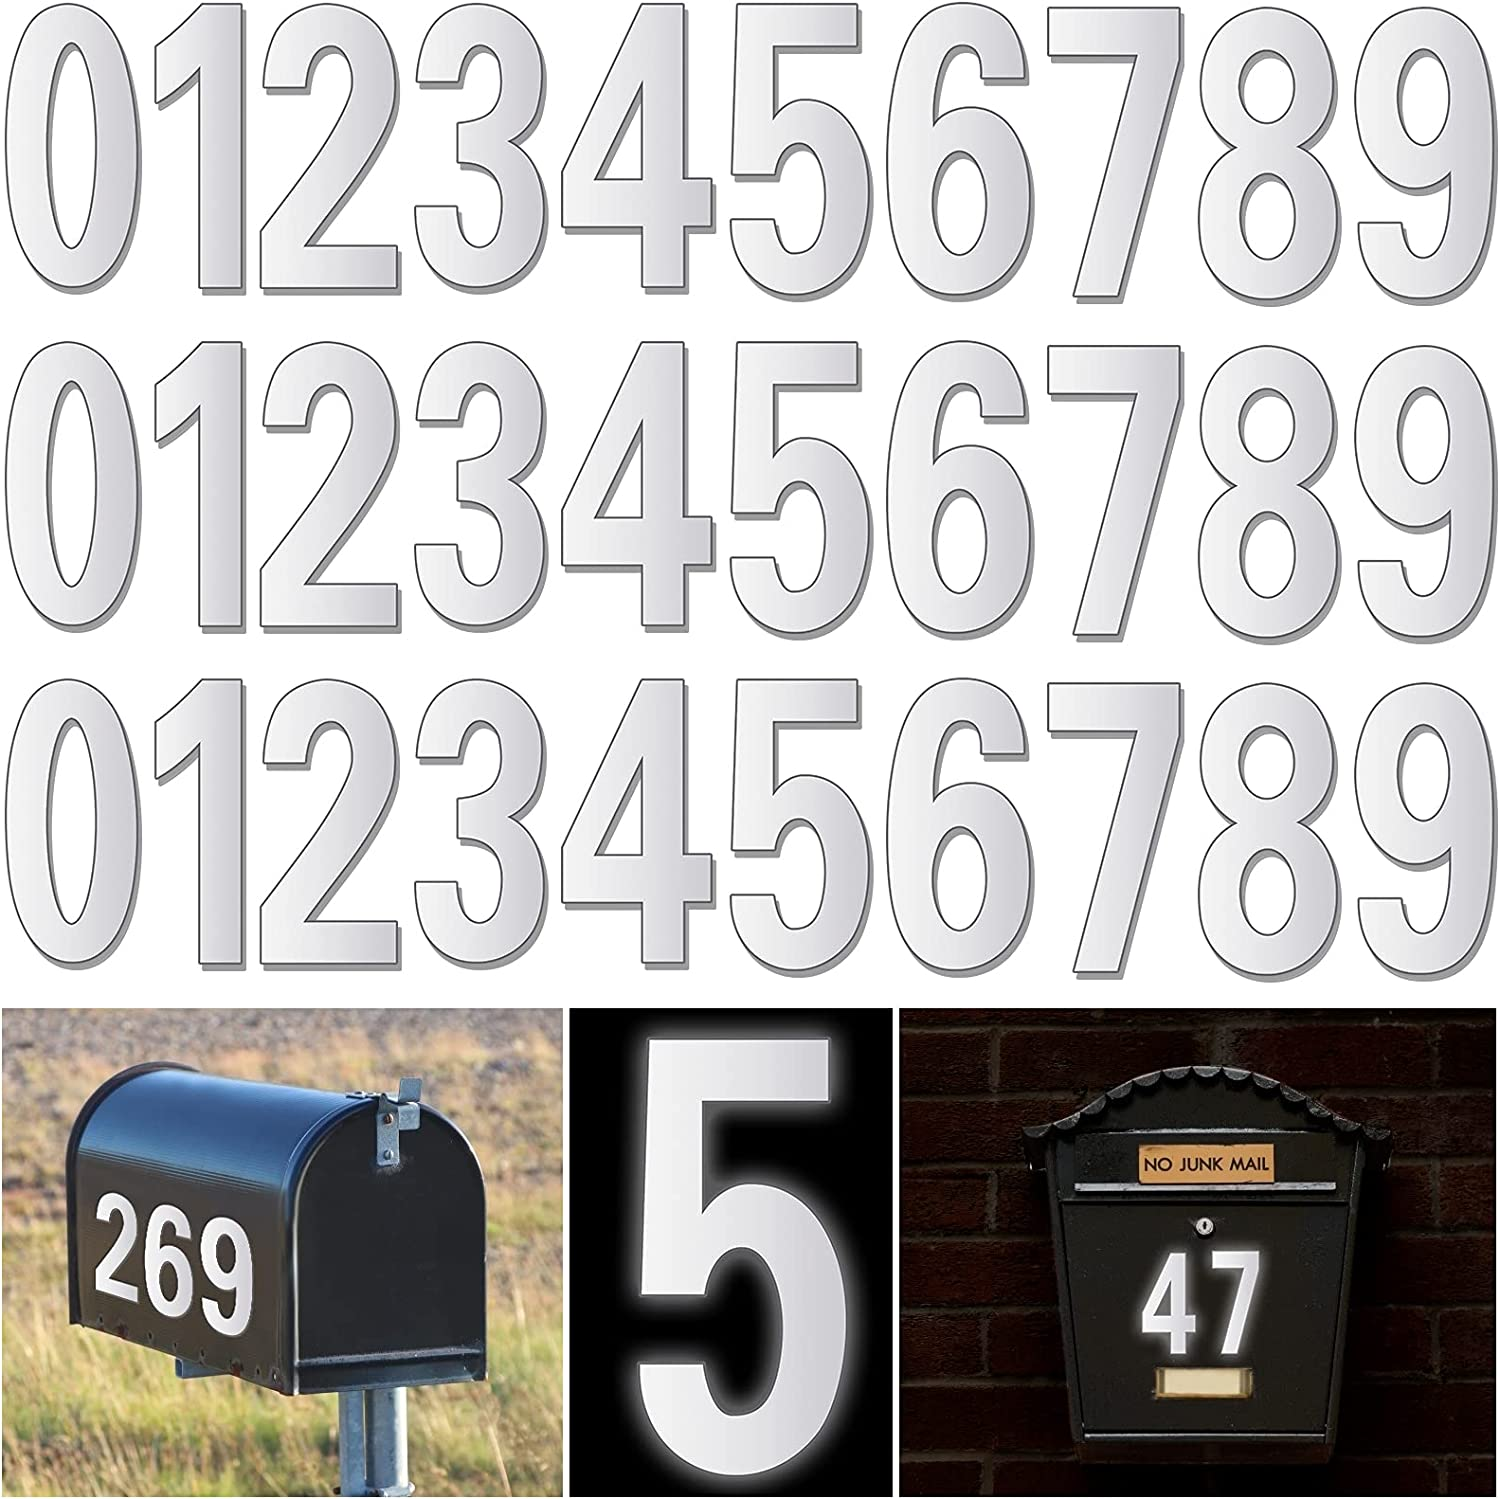 Reflective Mailbox Numbers for Outside - Pcs 30 Reservation Waterproof Mailb Sale